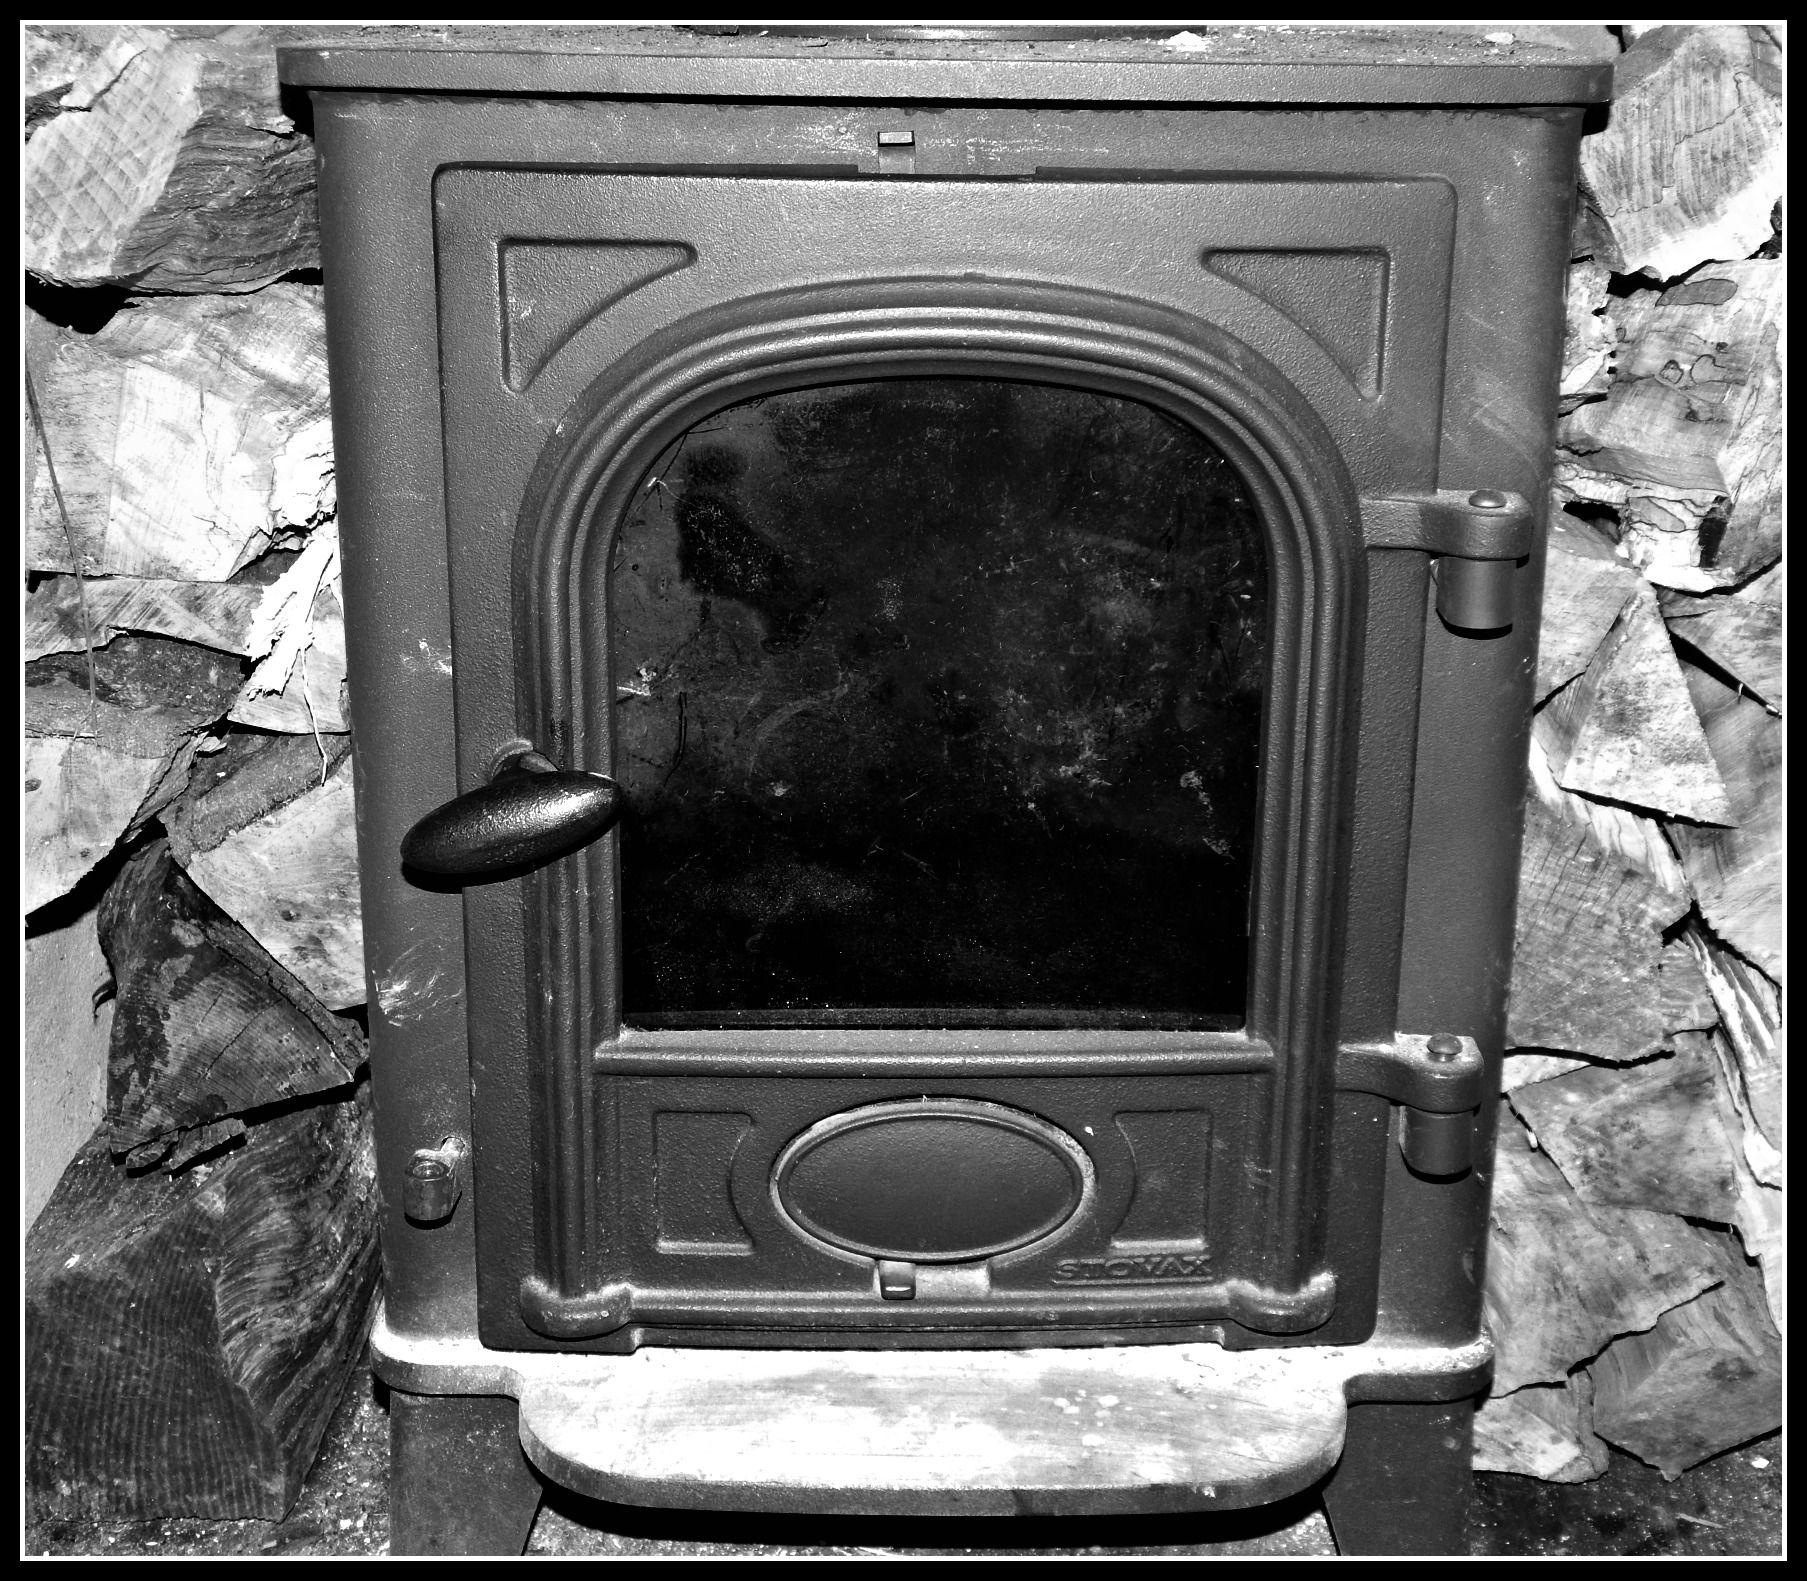 How a wood burning stove has made me reflective